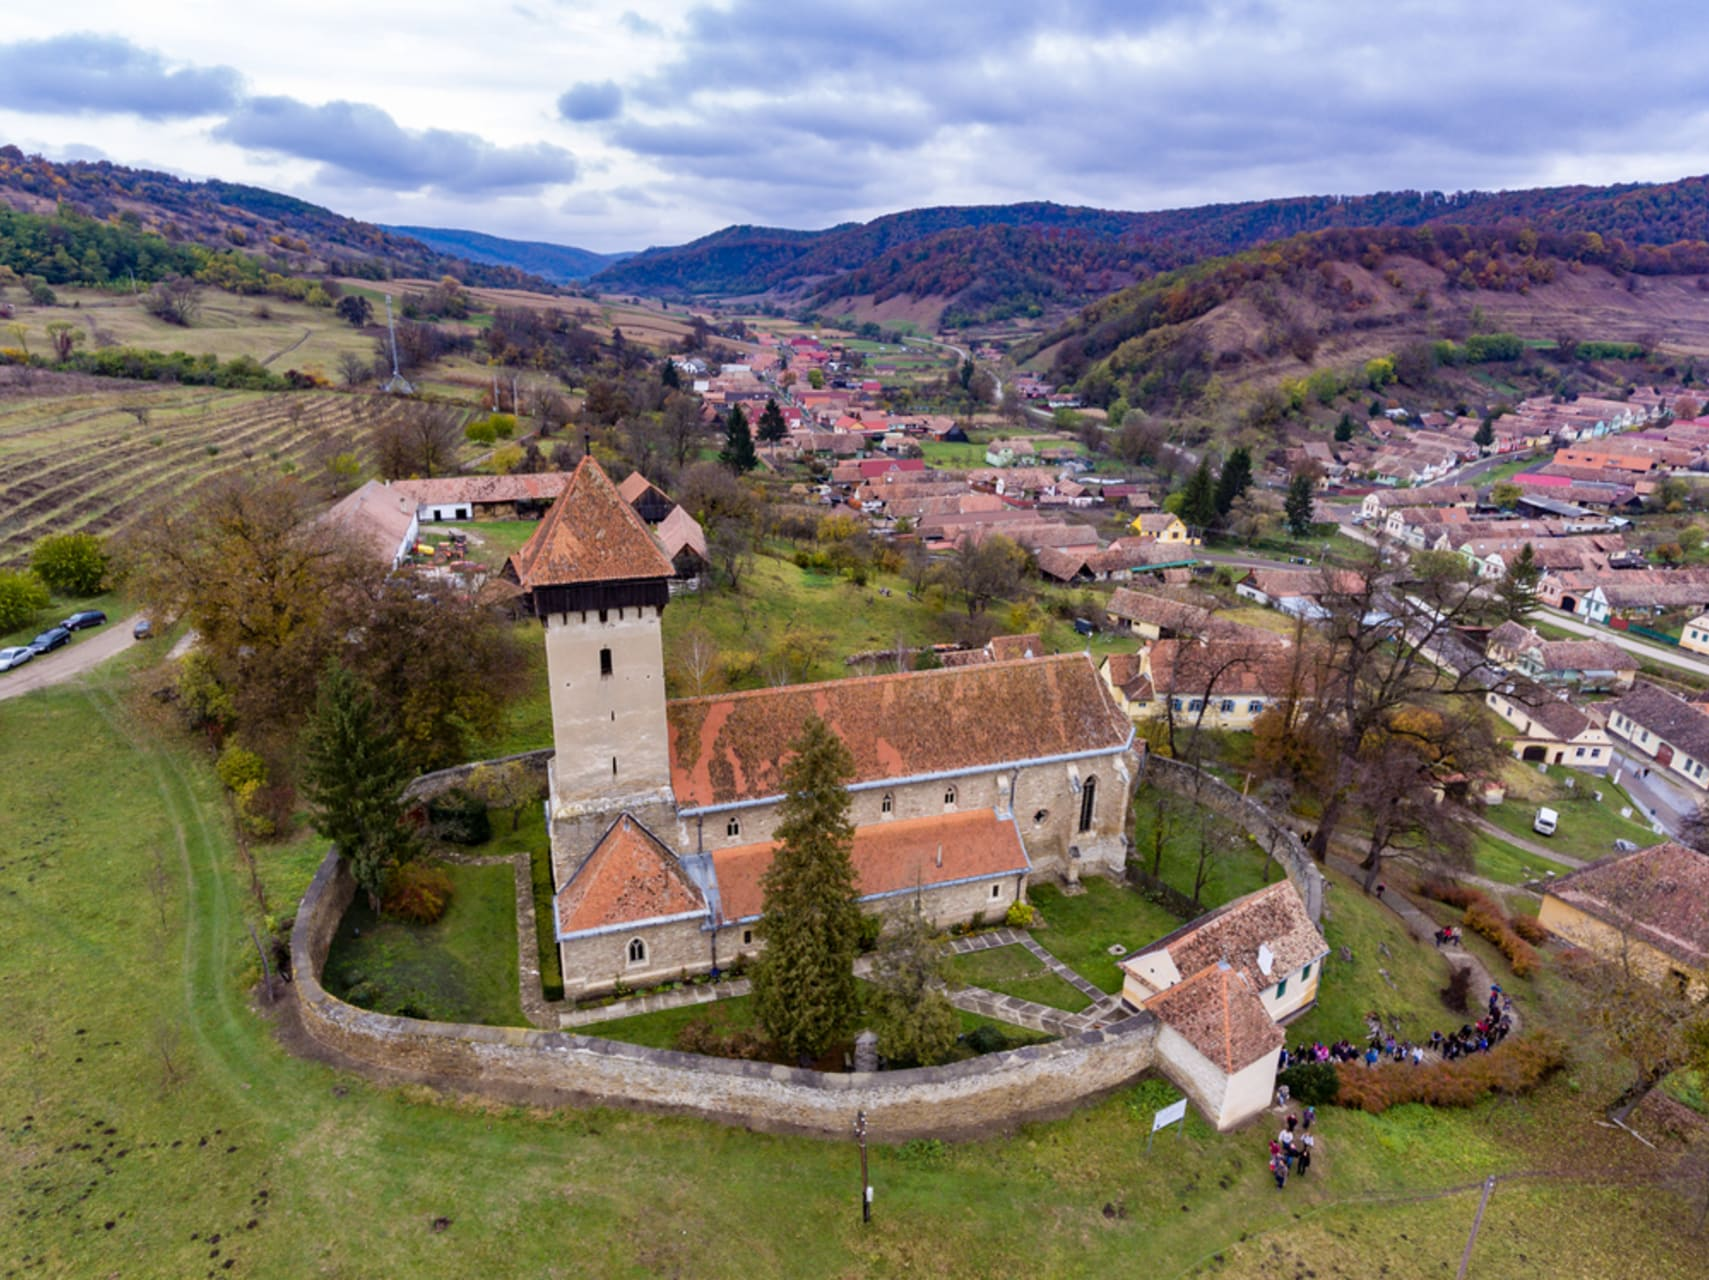 Transylvania - A 14th century Fortified Church, a 17th century beautiful manor and a famous & active weaver